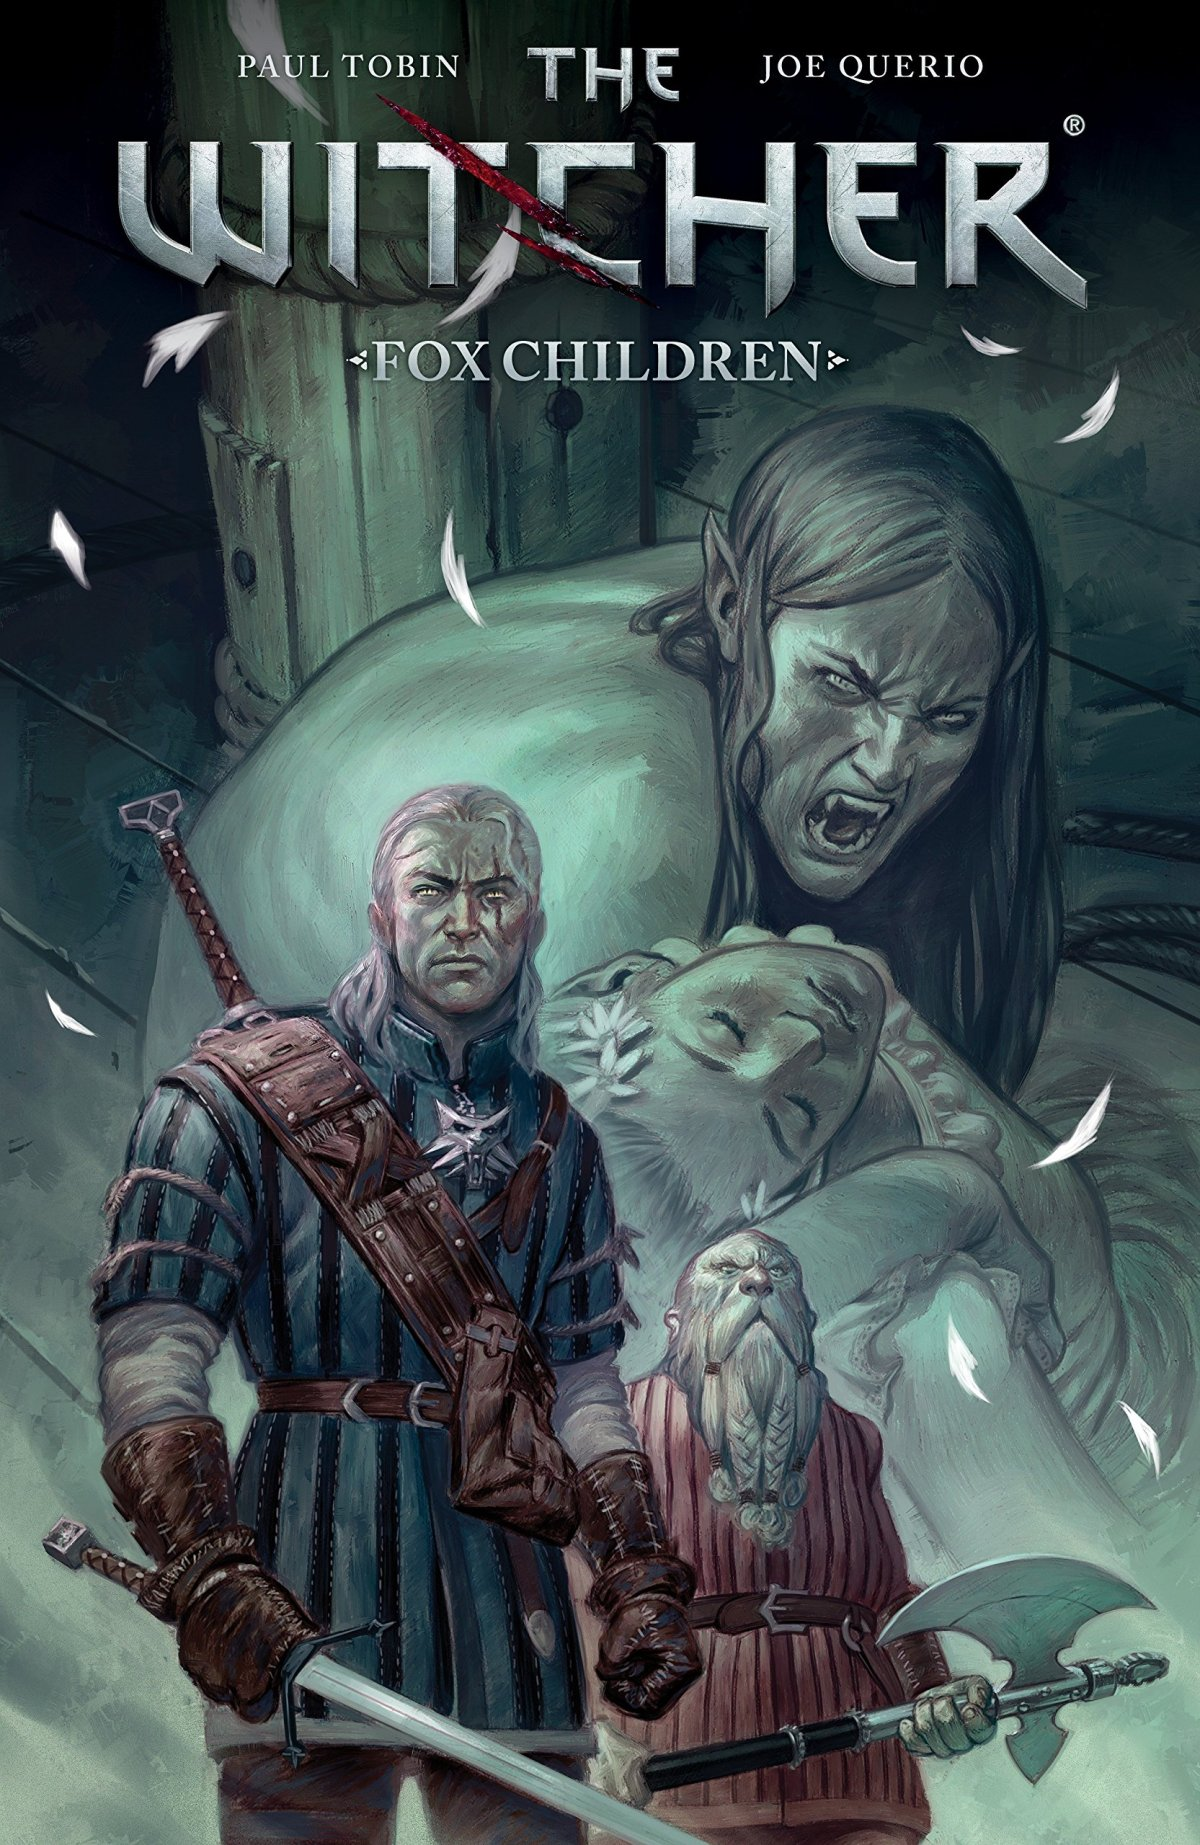 The cover of The Witcher: Fox Children